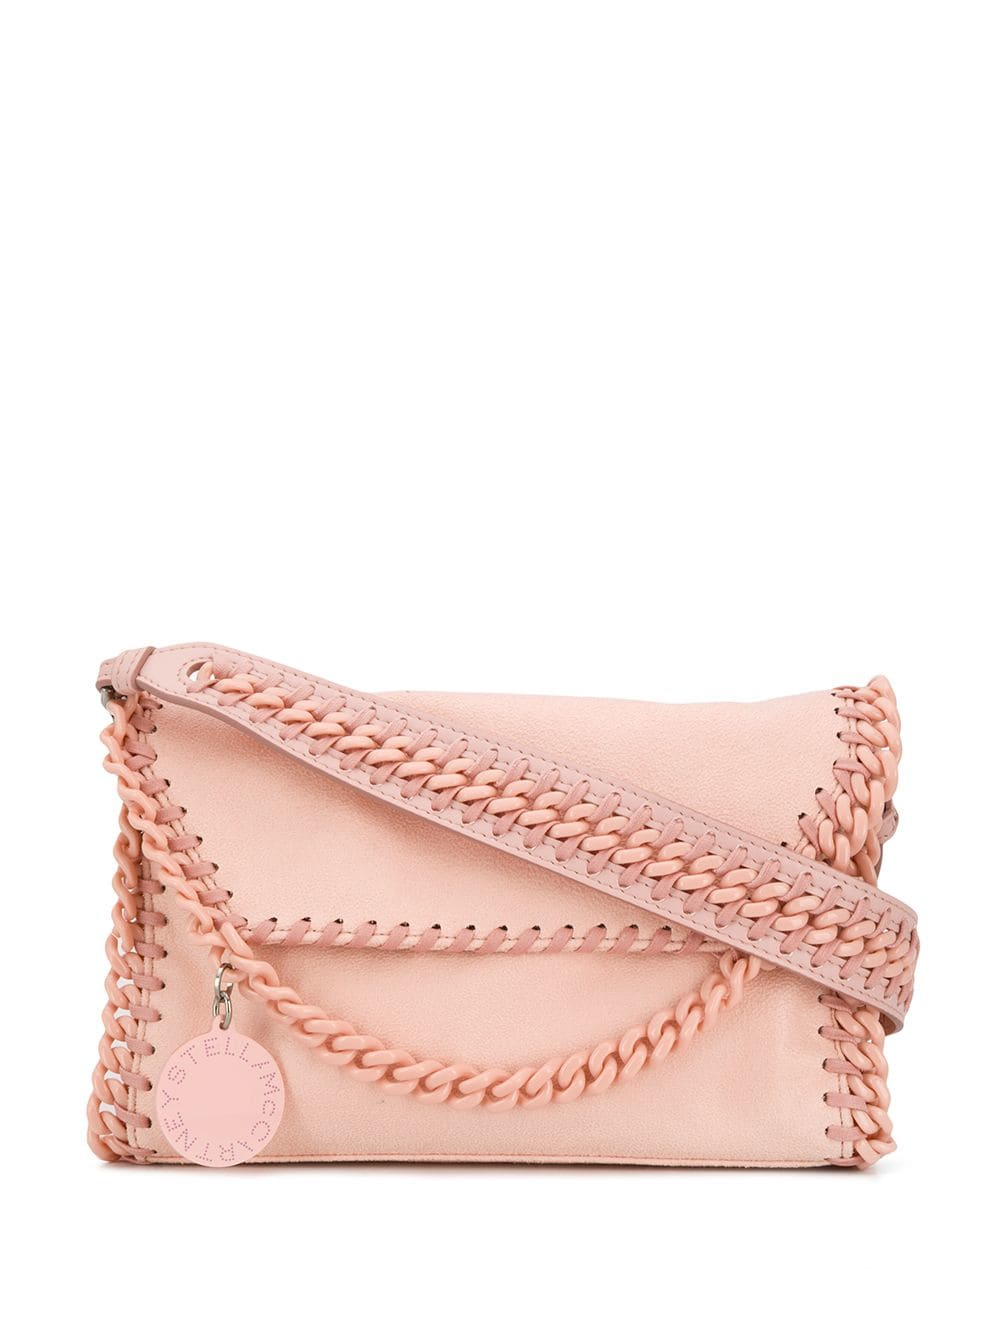 298e33df42c613 Pink Falabella Candy Mini Shoulder Bag - STELLA MC CARTNEY - Russocapri